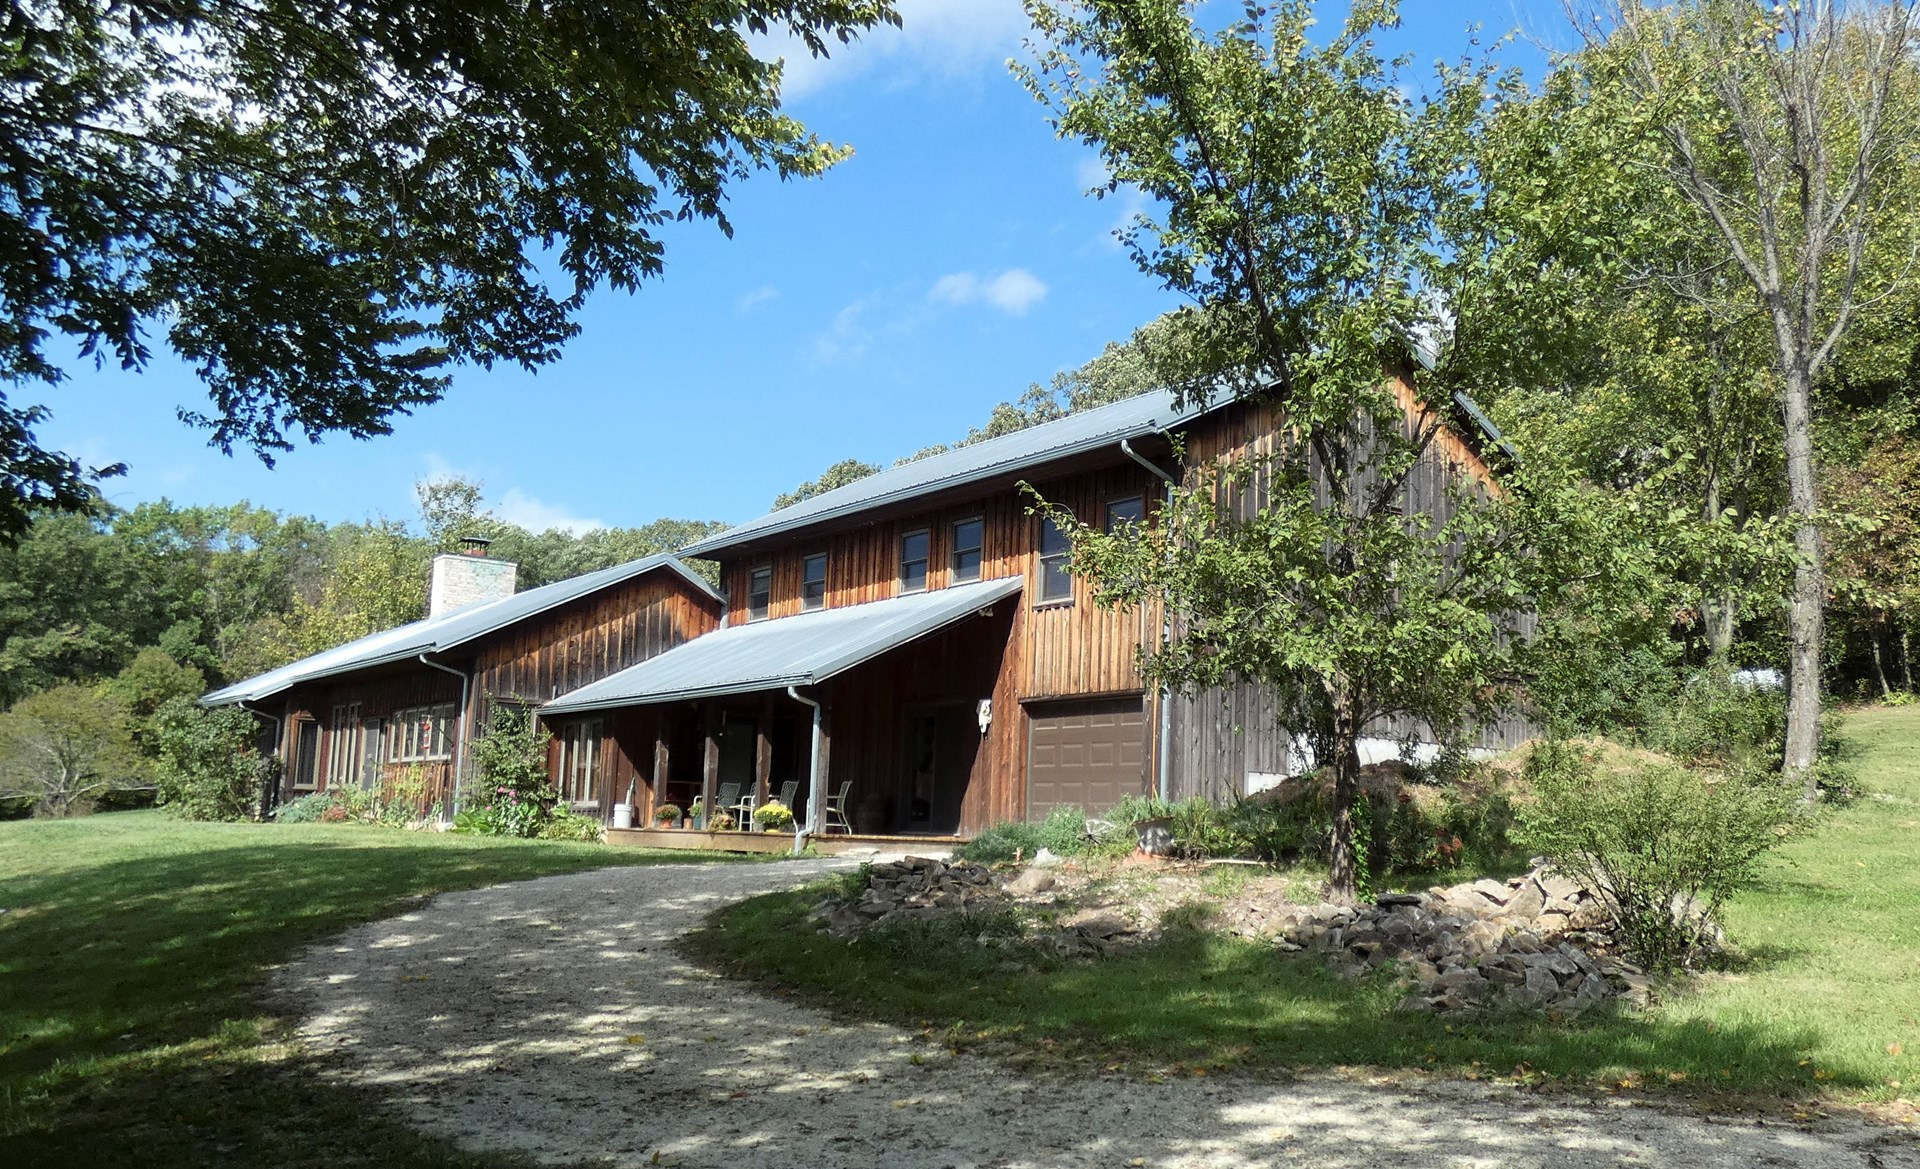 Rustic Sustainable Home & Acreage For Sale in Hermann, MO